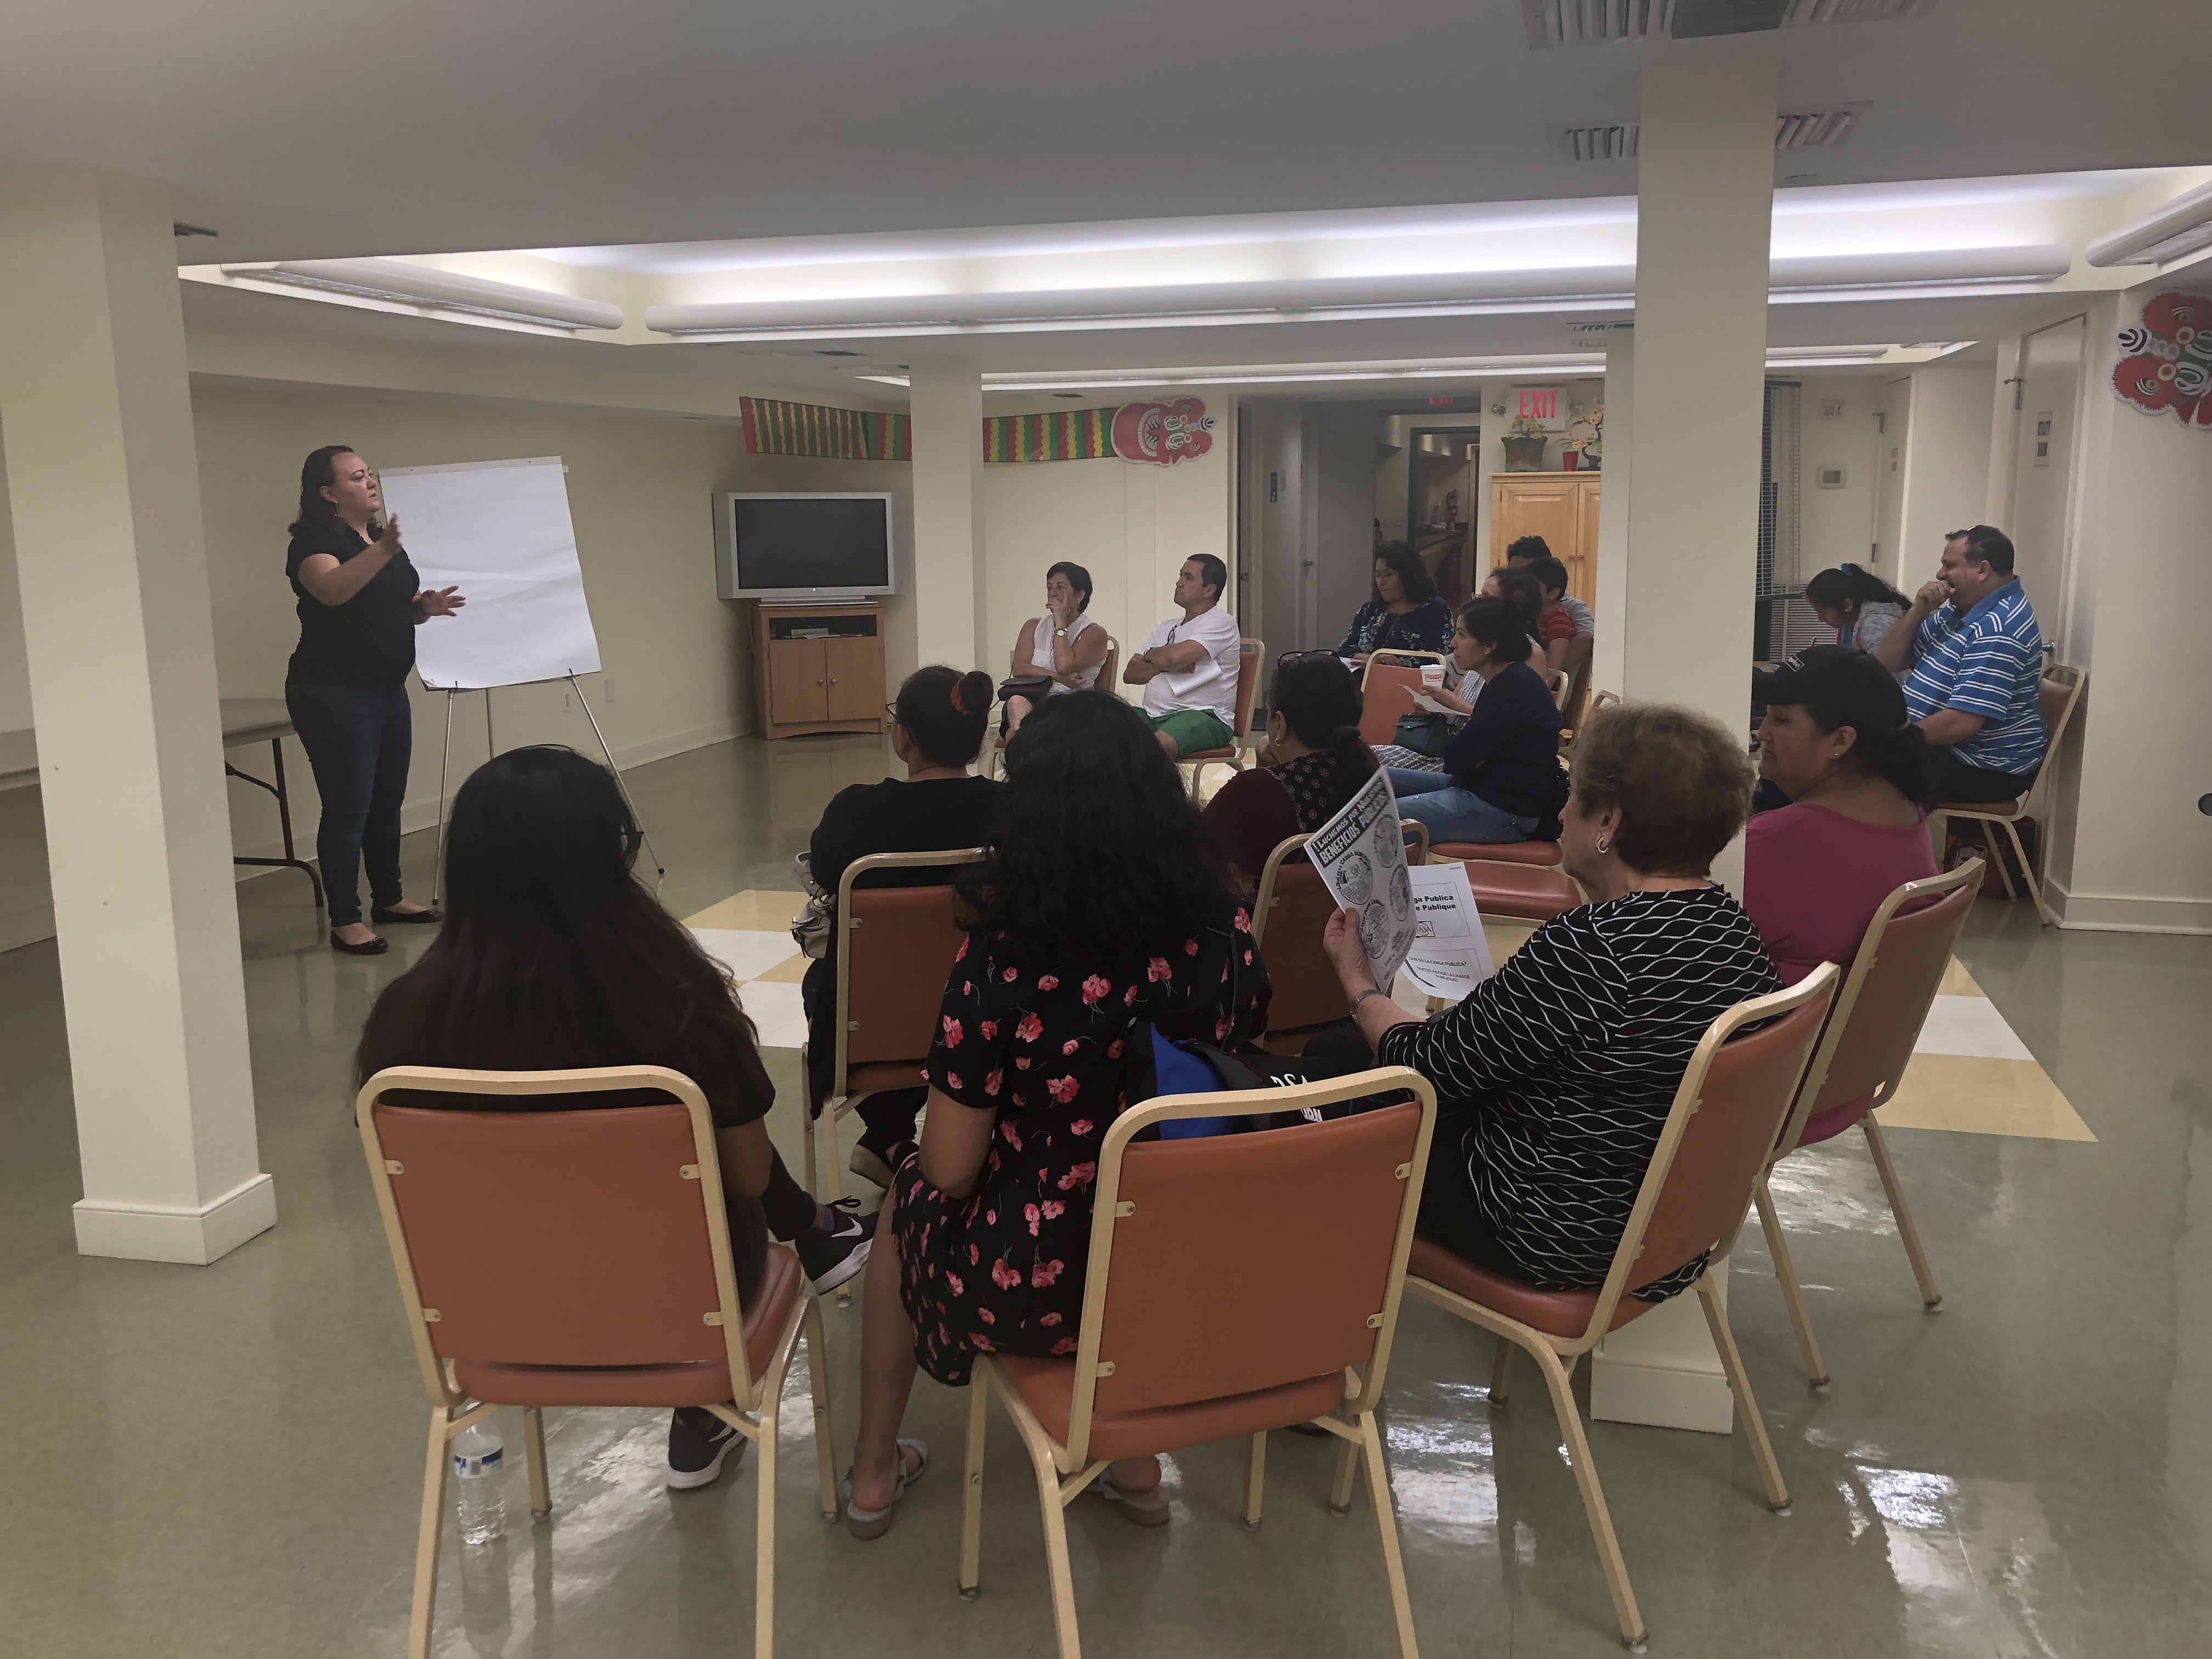 CASA de Maryland officials host a public charge information workshop in Falls Church, Virginia, Oct. 4, 2018. The aim of the meeting was to explain how the expanded Public Charge Rule could make it harder for legal immigrants to get green cards if th...